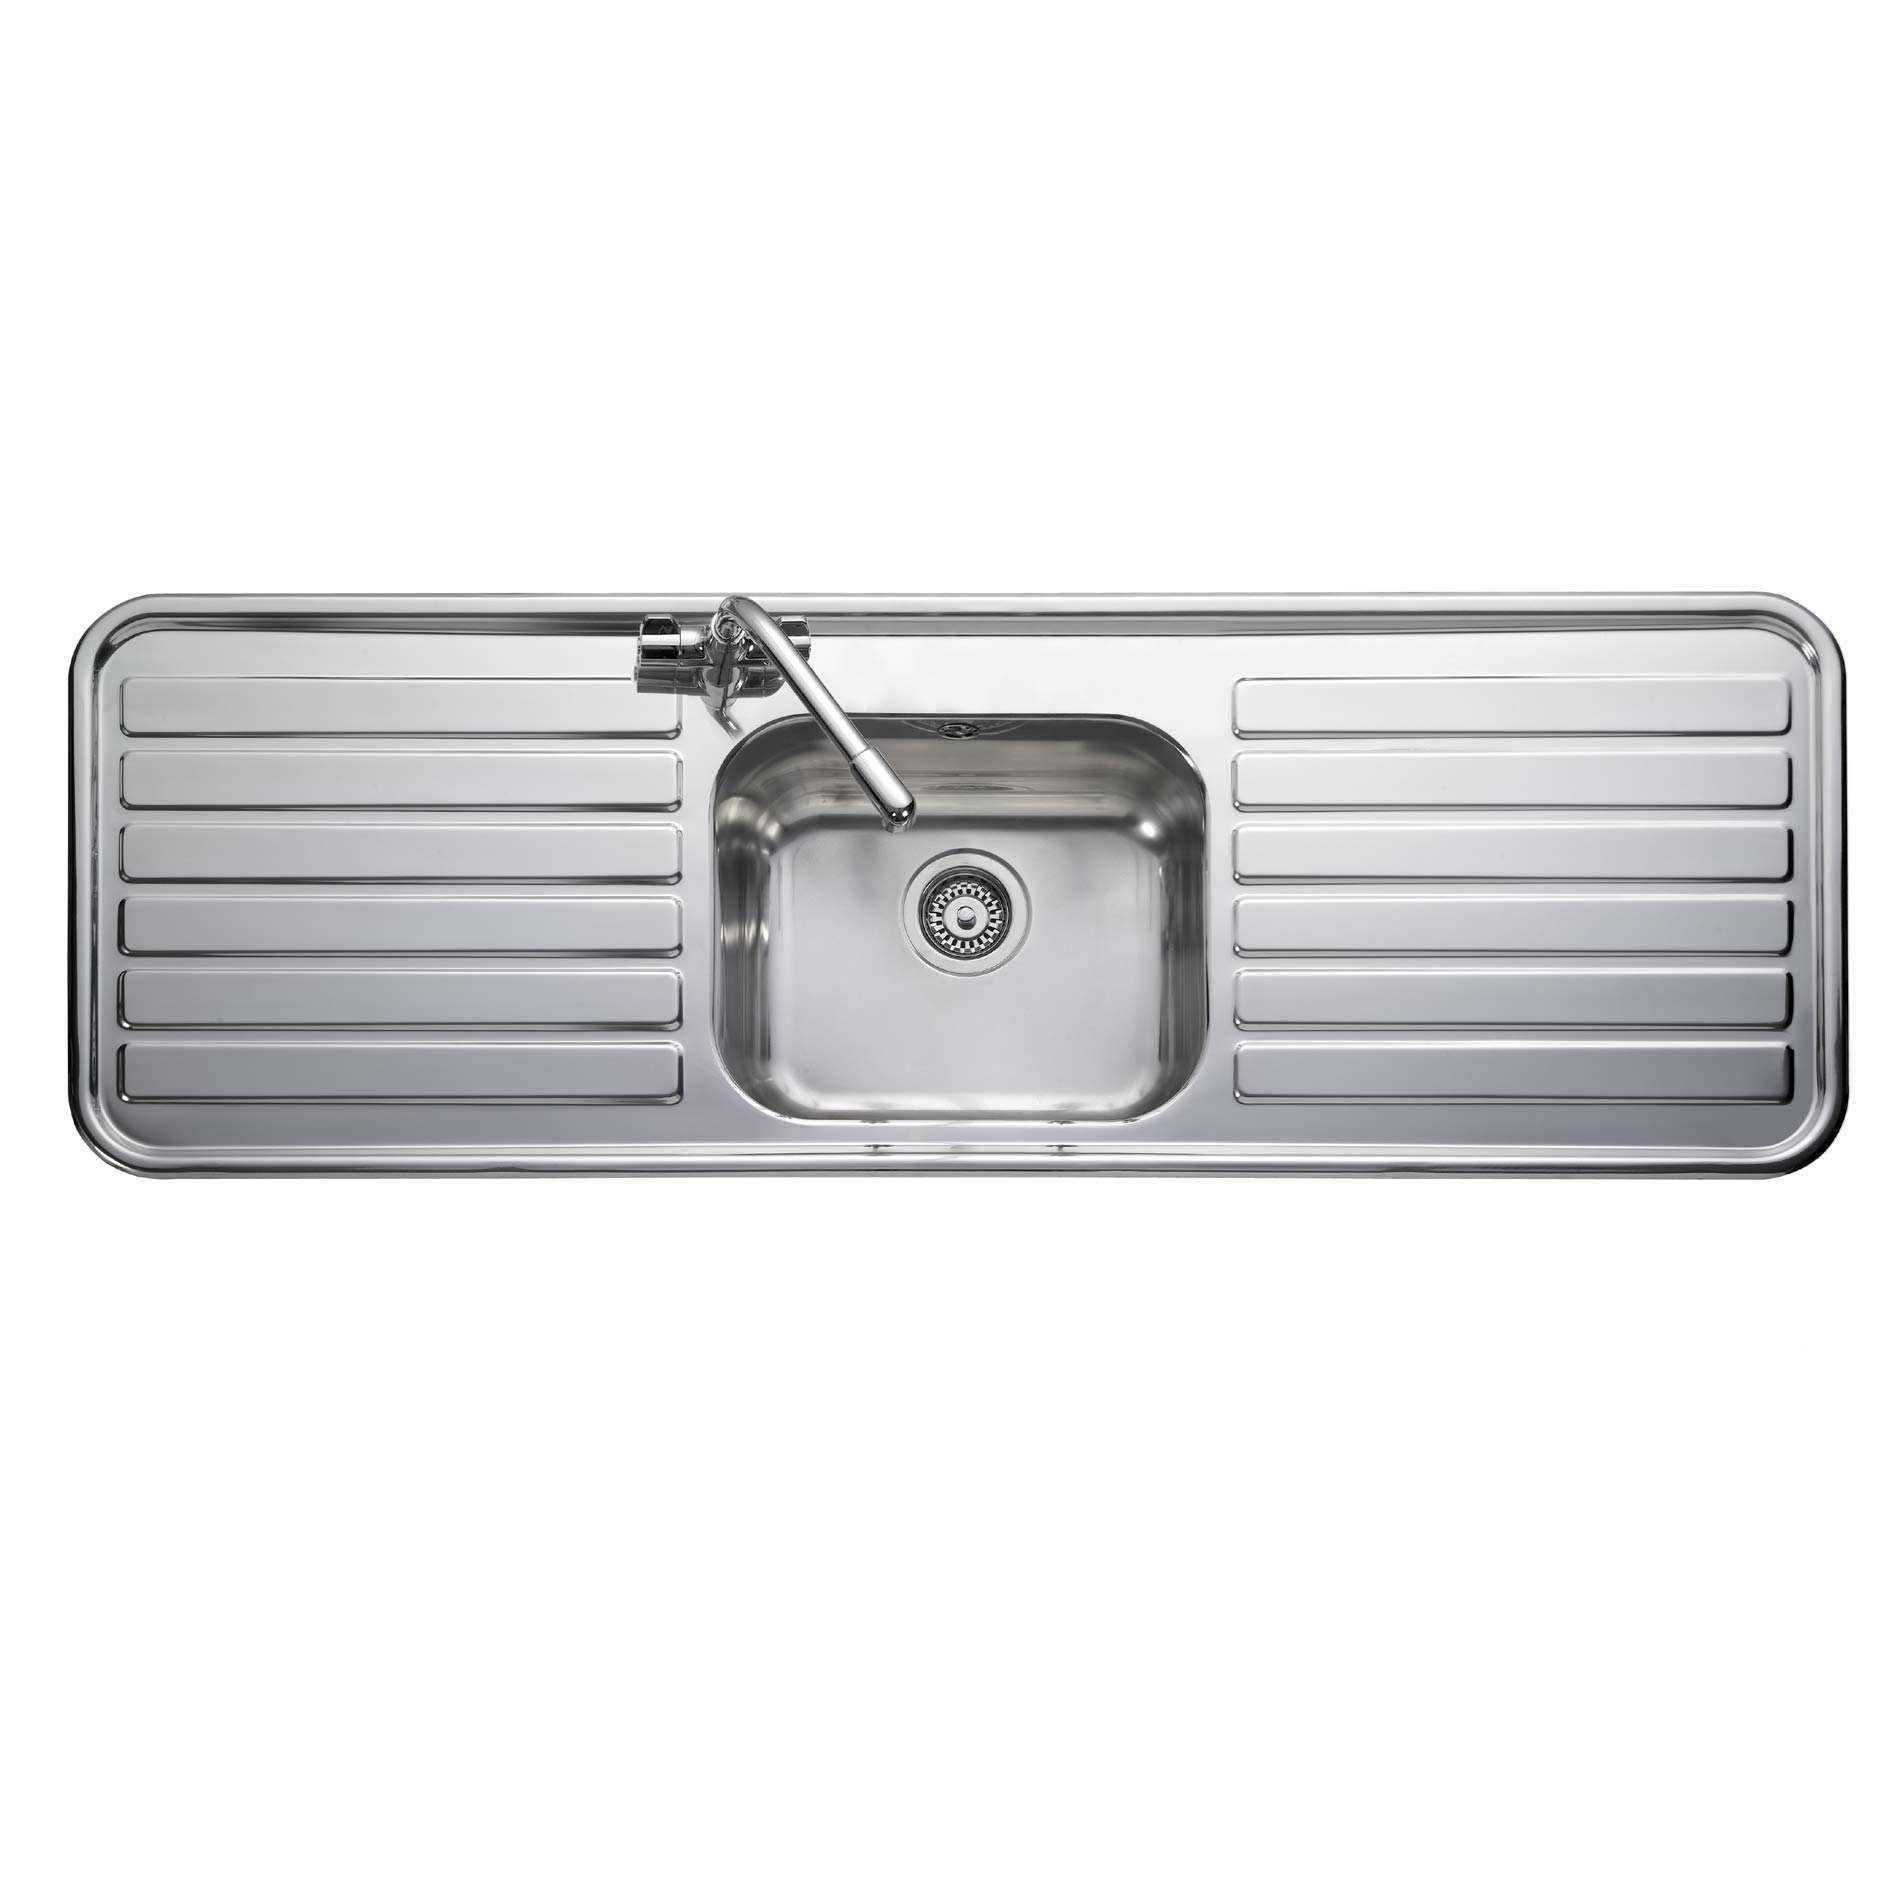 Leisure: Luxe LX155 Stainless Steel Sink - Kitchen Sinks & Taps